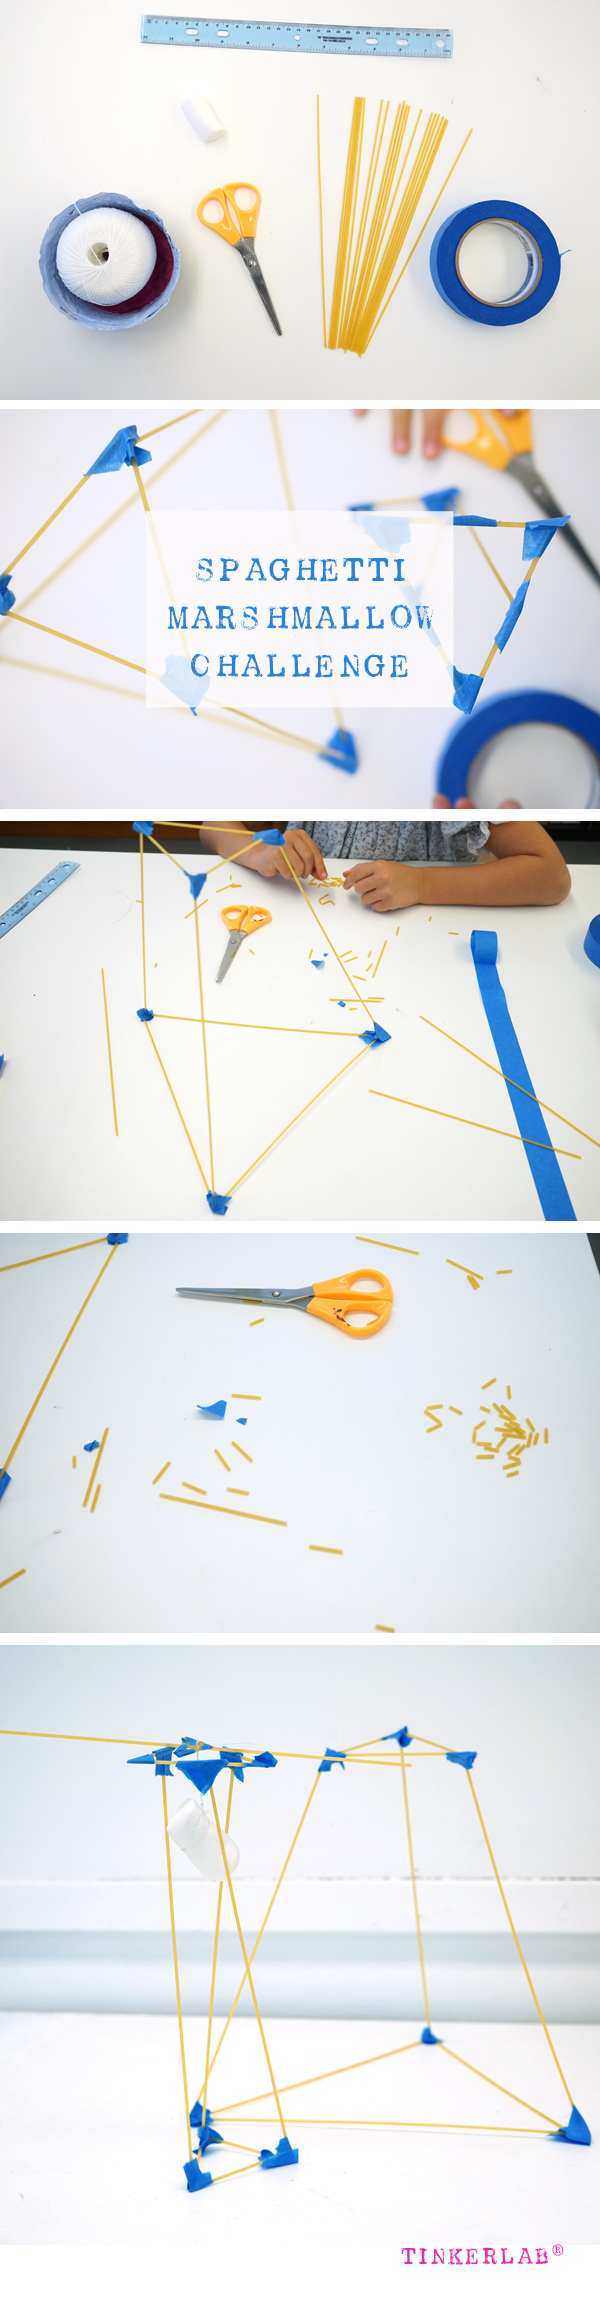 Spaghetti and Marshmallow Challenge